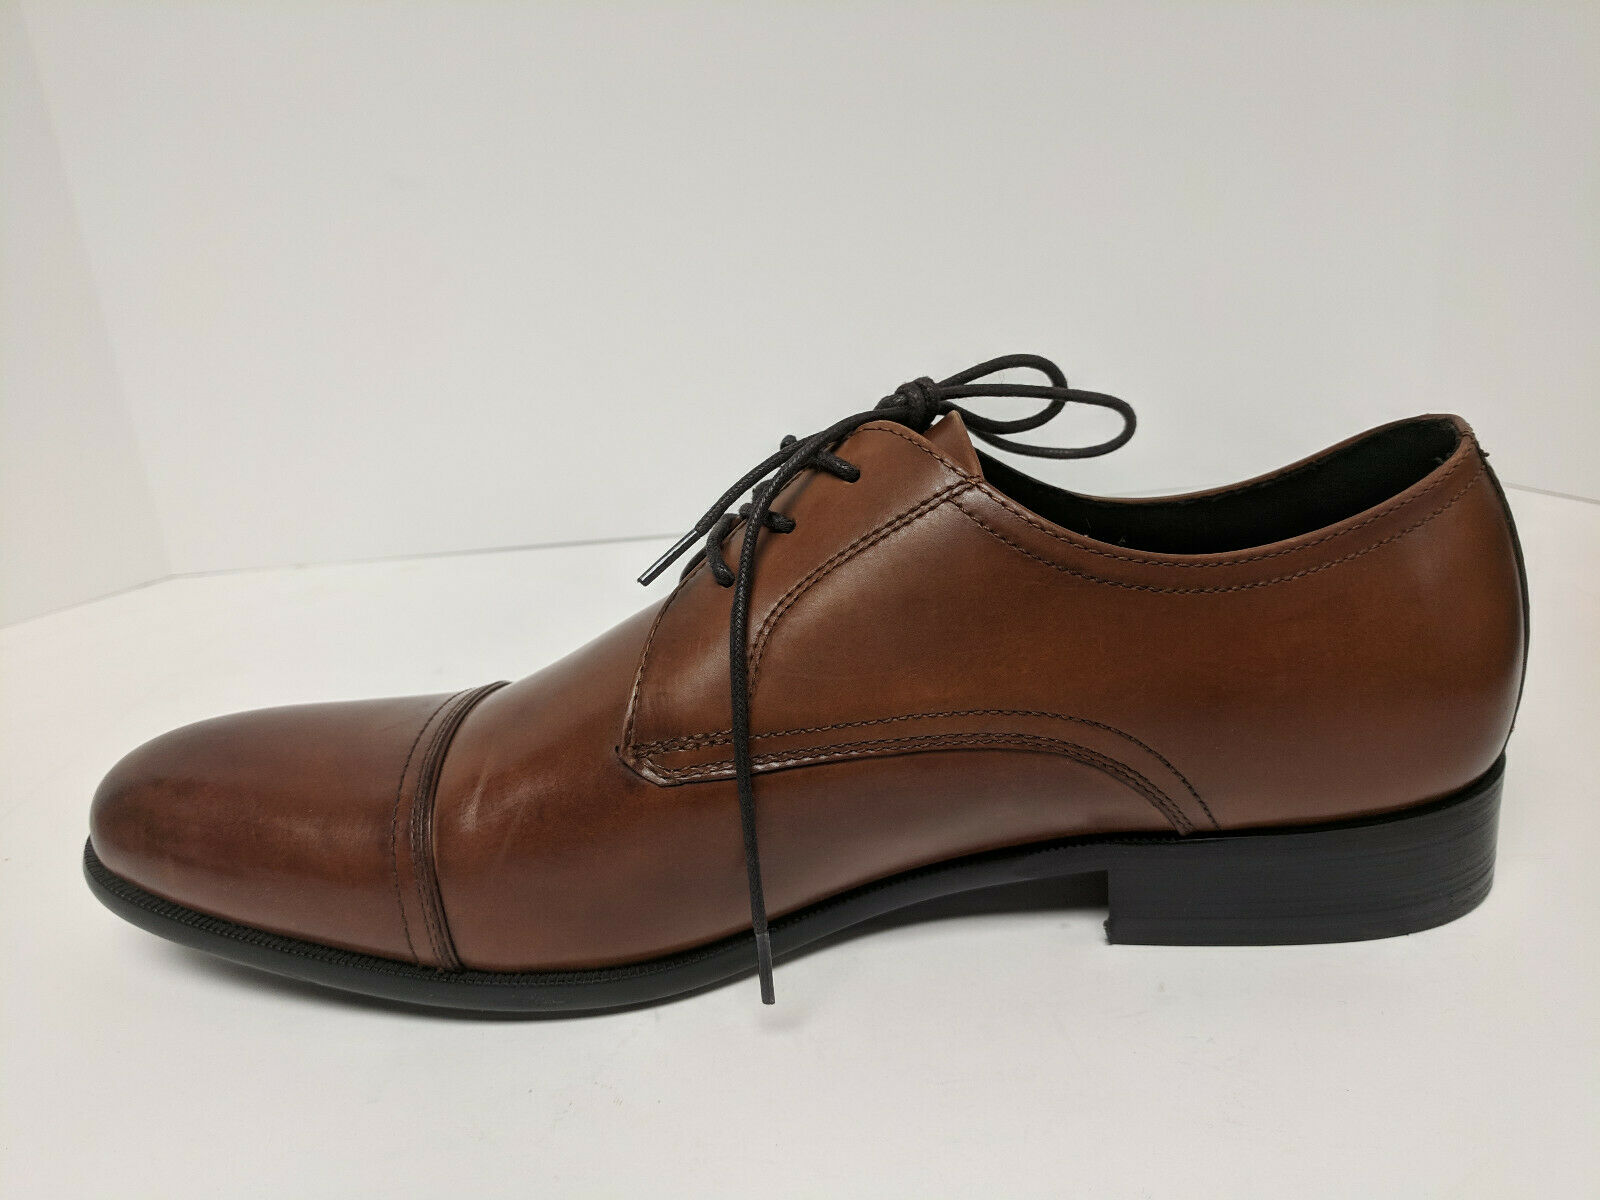 Kenneth Cole New York Capital Lace Up Oxford, Brandy, Mens 11.5 M